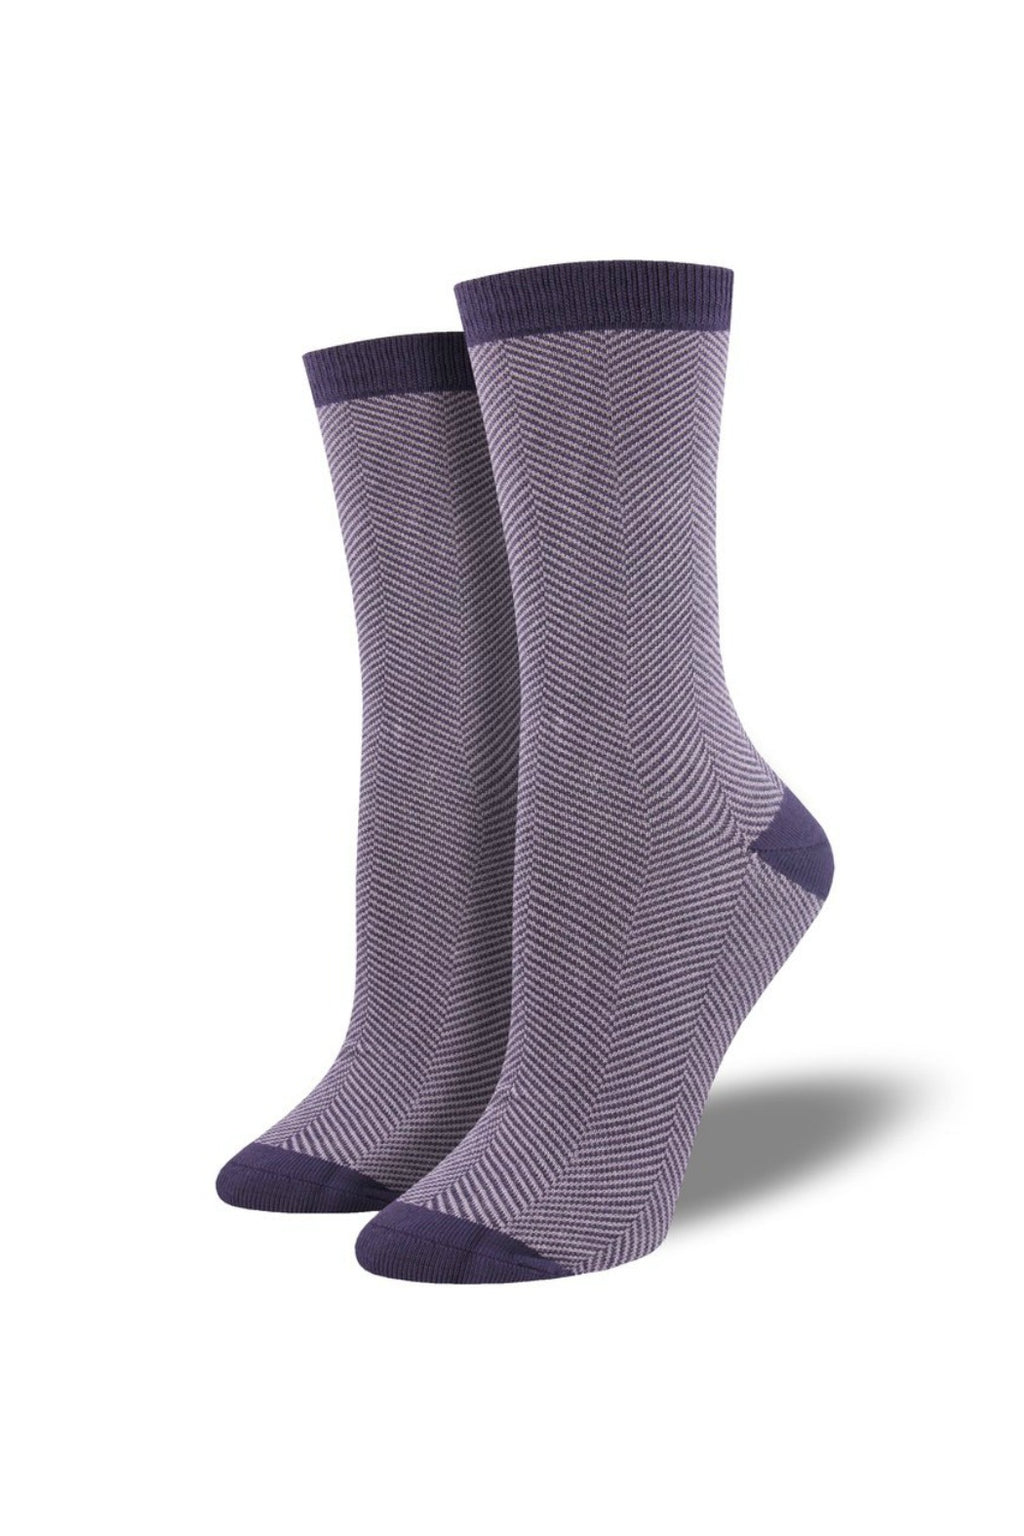 Socksmith Bamboo Socks Solid in Herringbone Purple